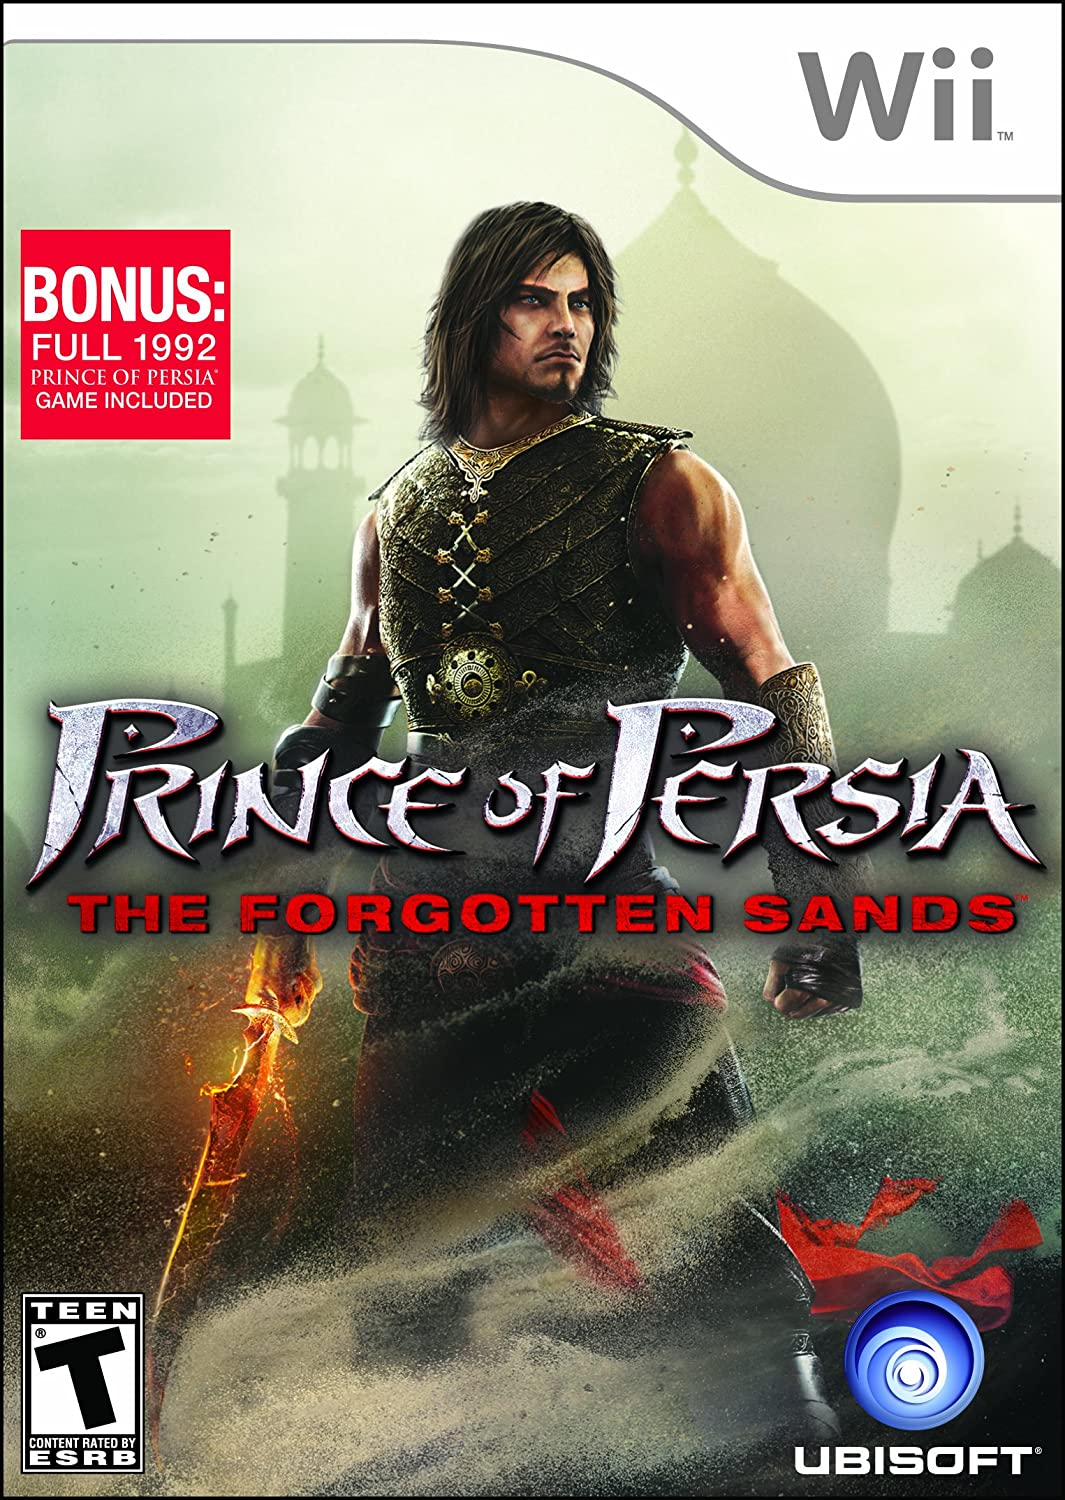 Prince of Persia: The Forgotten Sands - Nintendo Wii